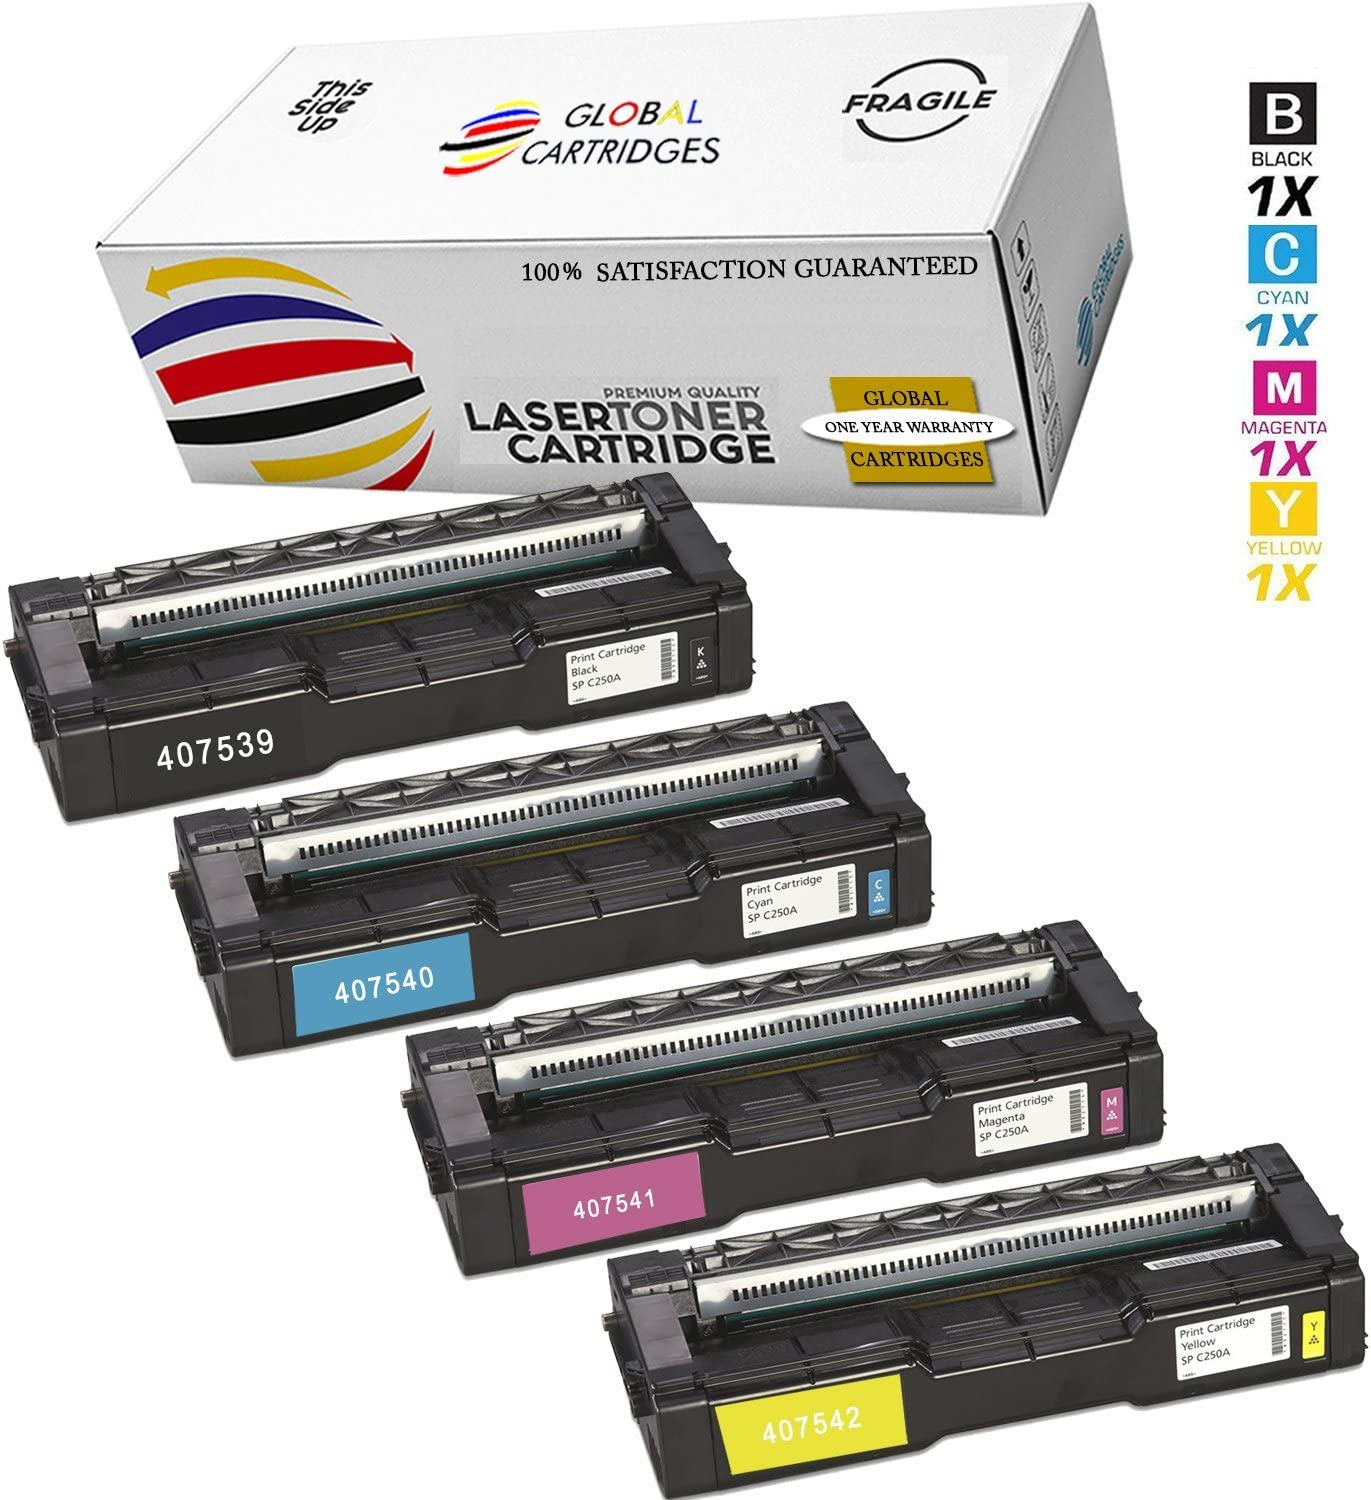 C261SFN Printer Cartridge Compatible SP C250DN High Capacity Magenta 1-Pack C250SF Replacement for Ricoh 407541 Color Toner Cartridge